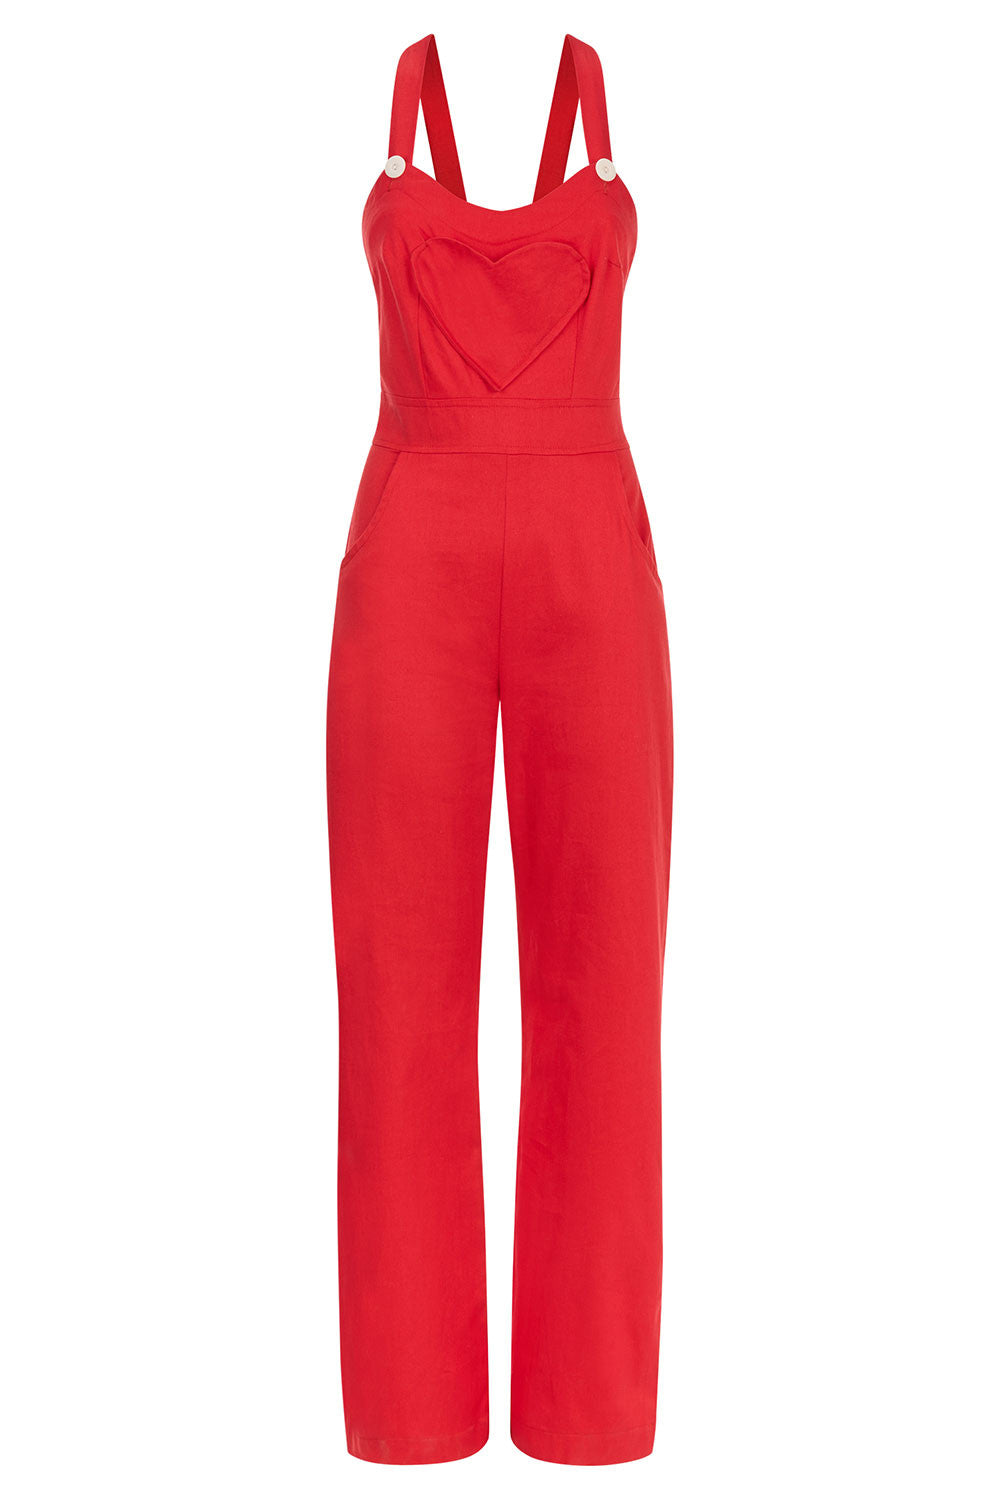 The Loveheart Dungarees - Red